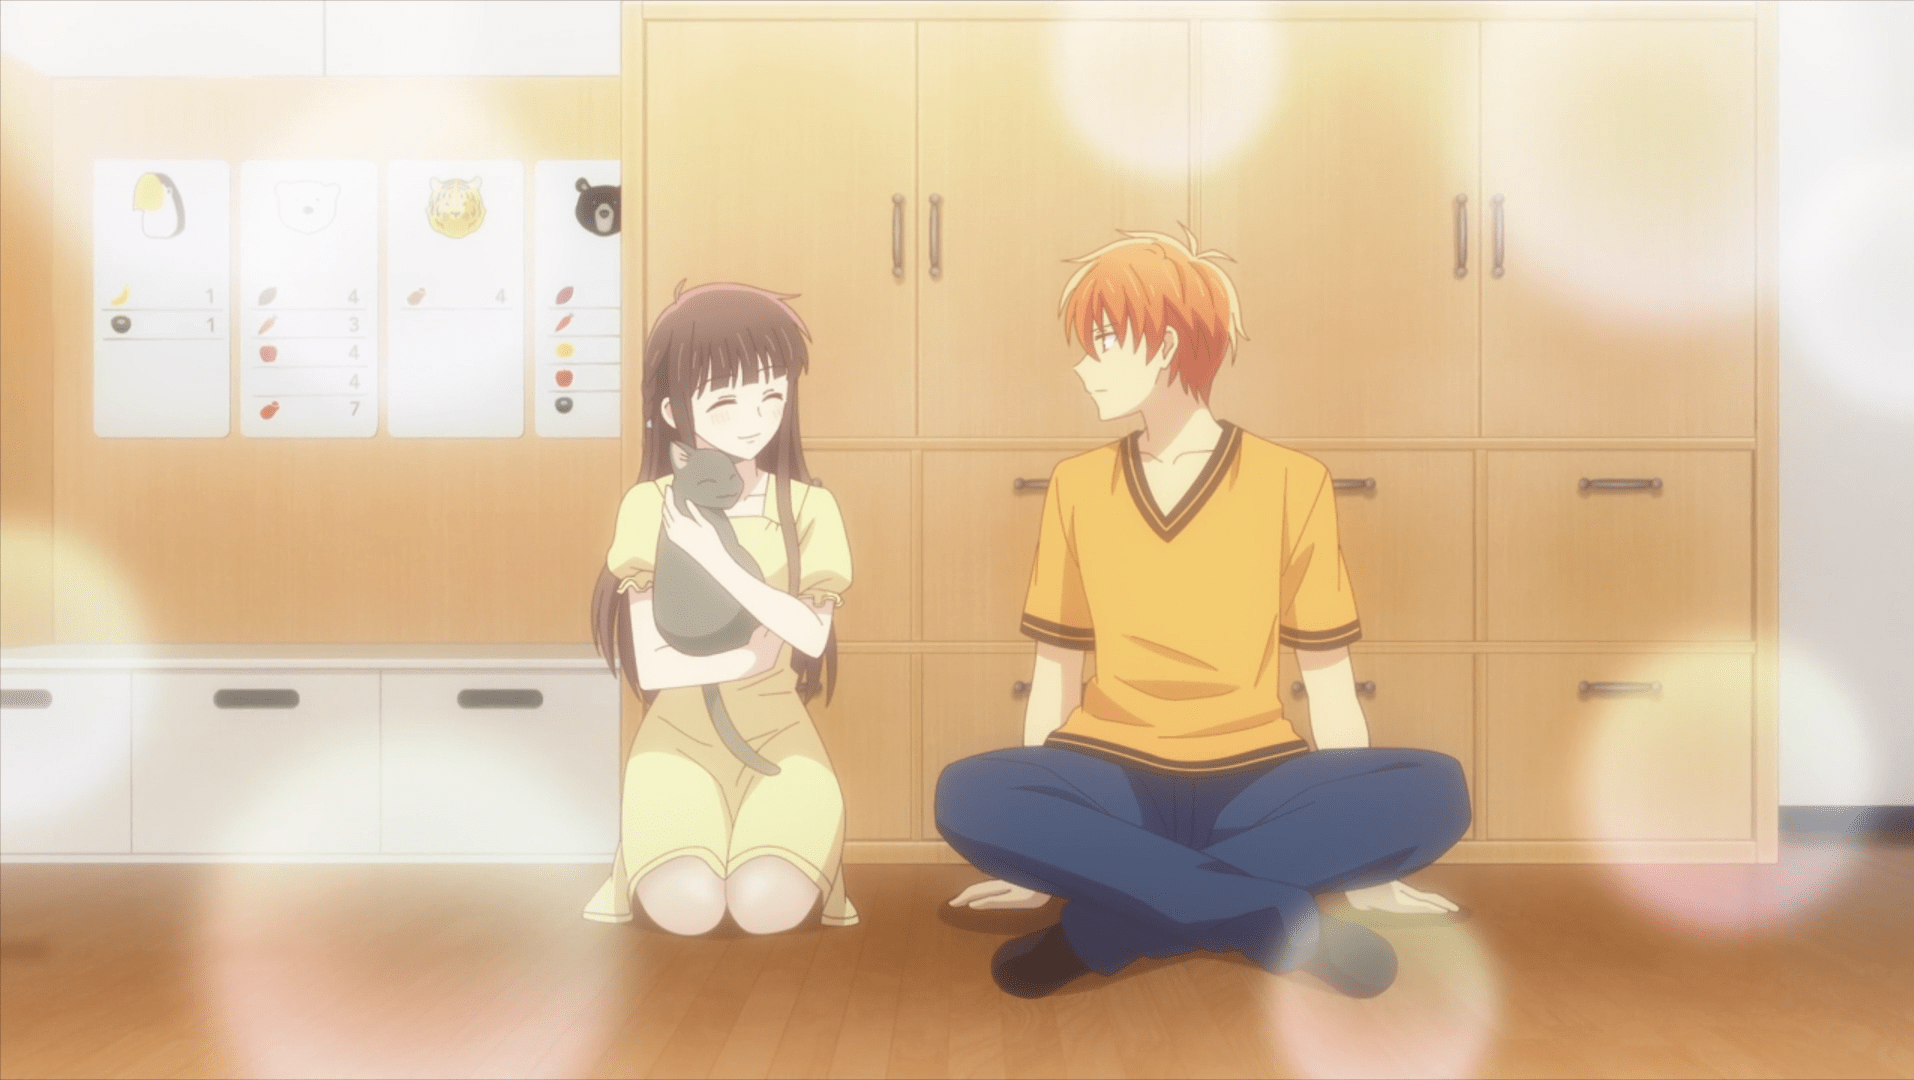 But Tohru and Kyo - Image from Fruits Basket the Final Season